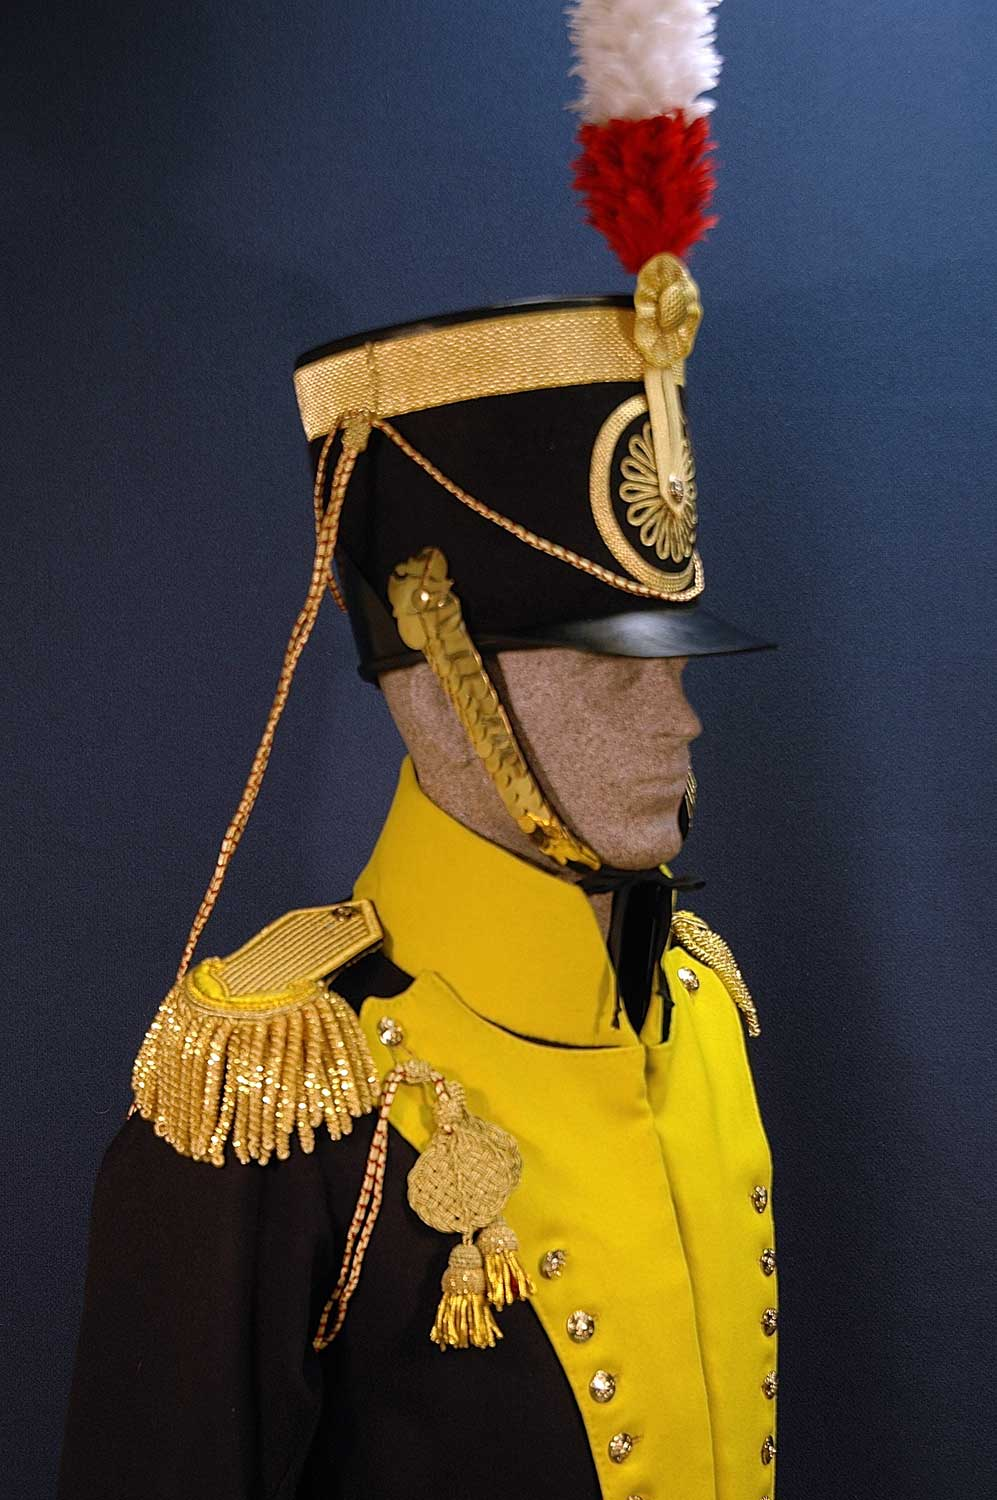 British, 19th Light Dragoon, Officer, 1814